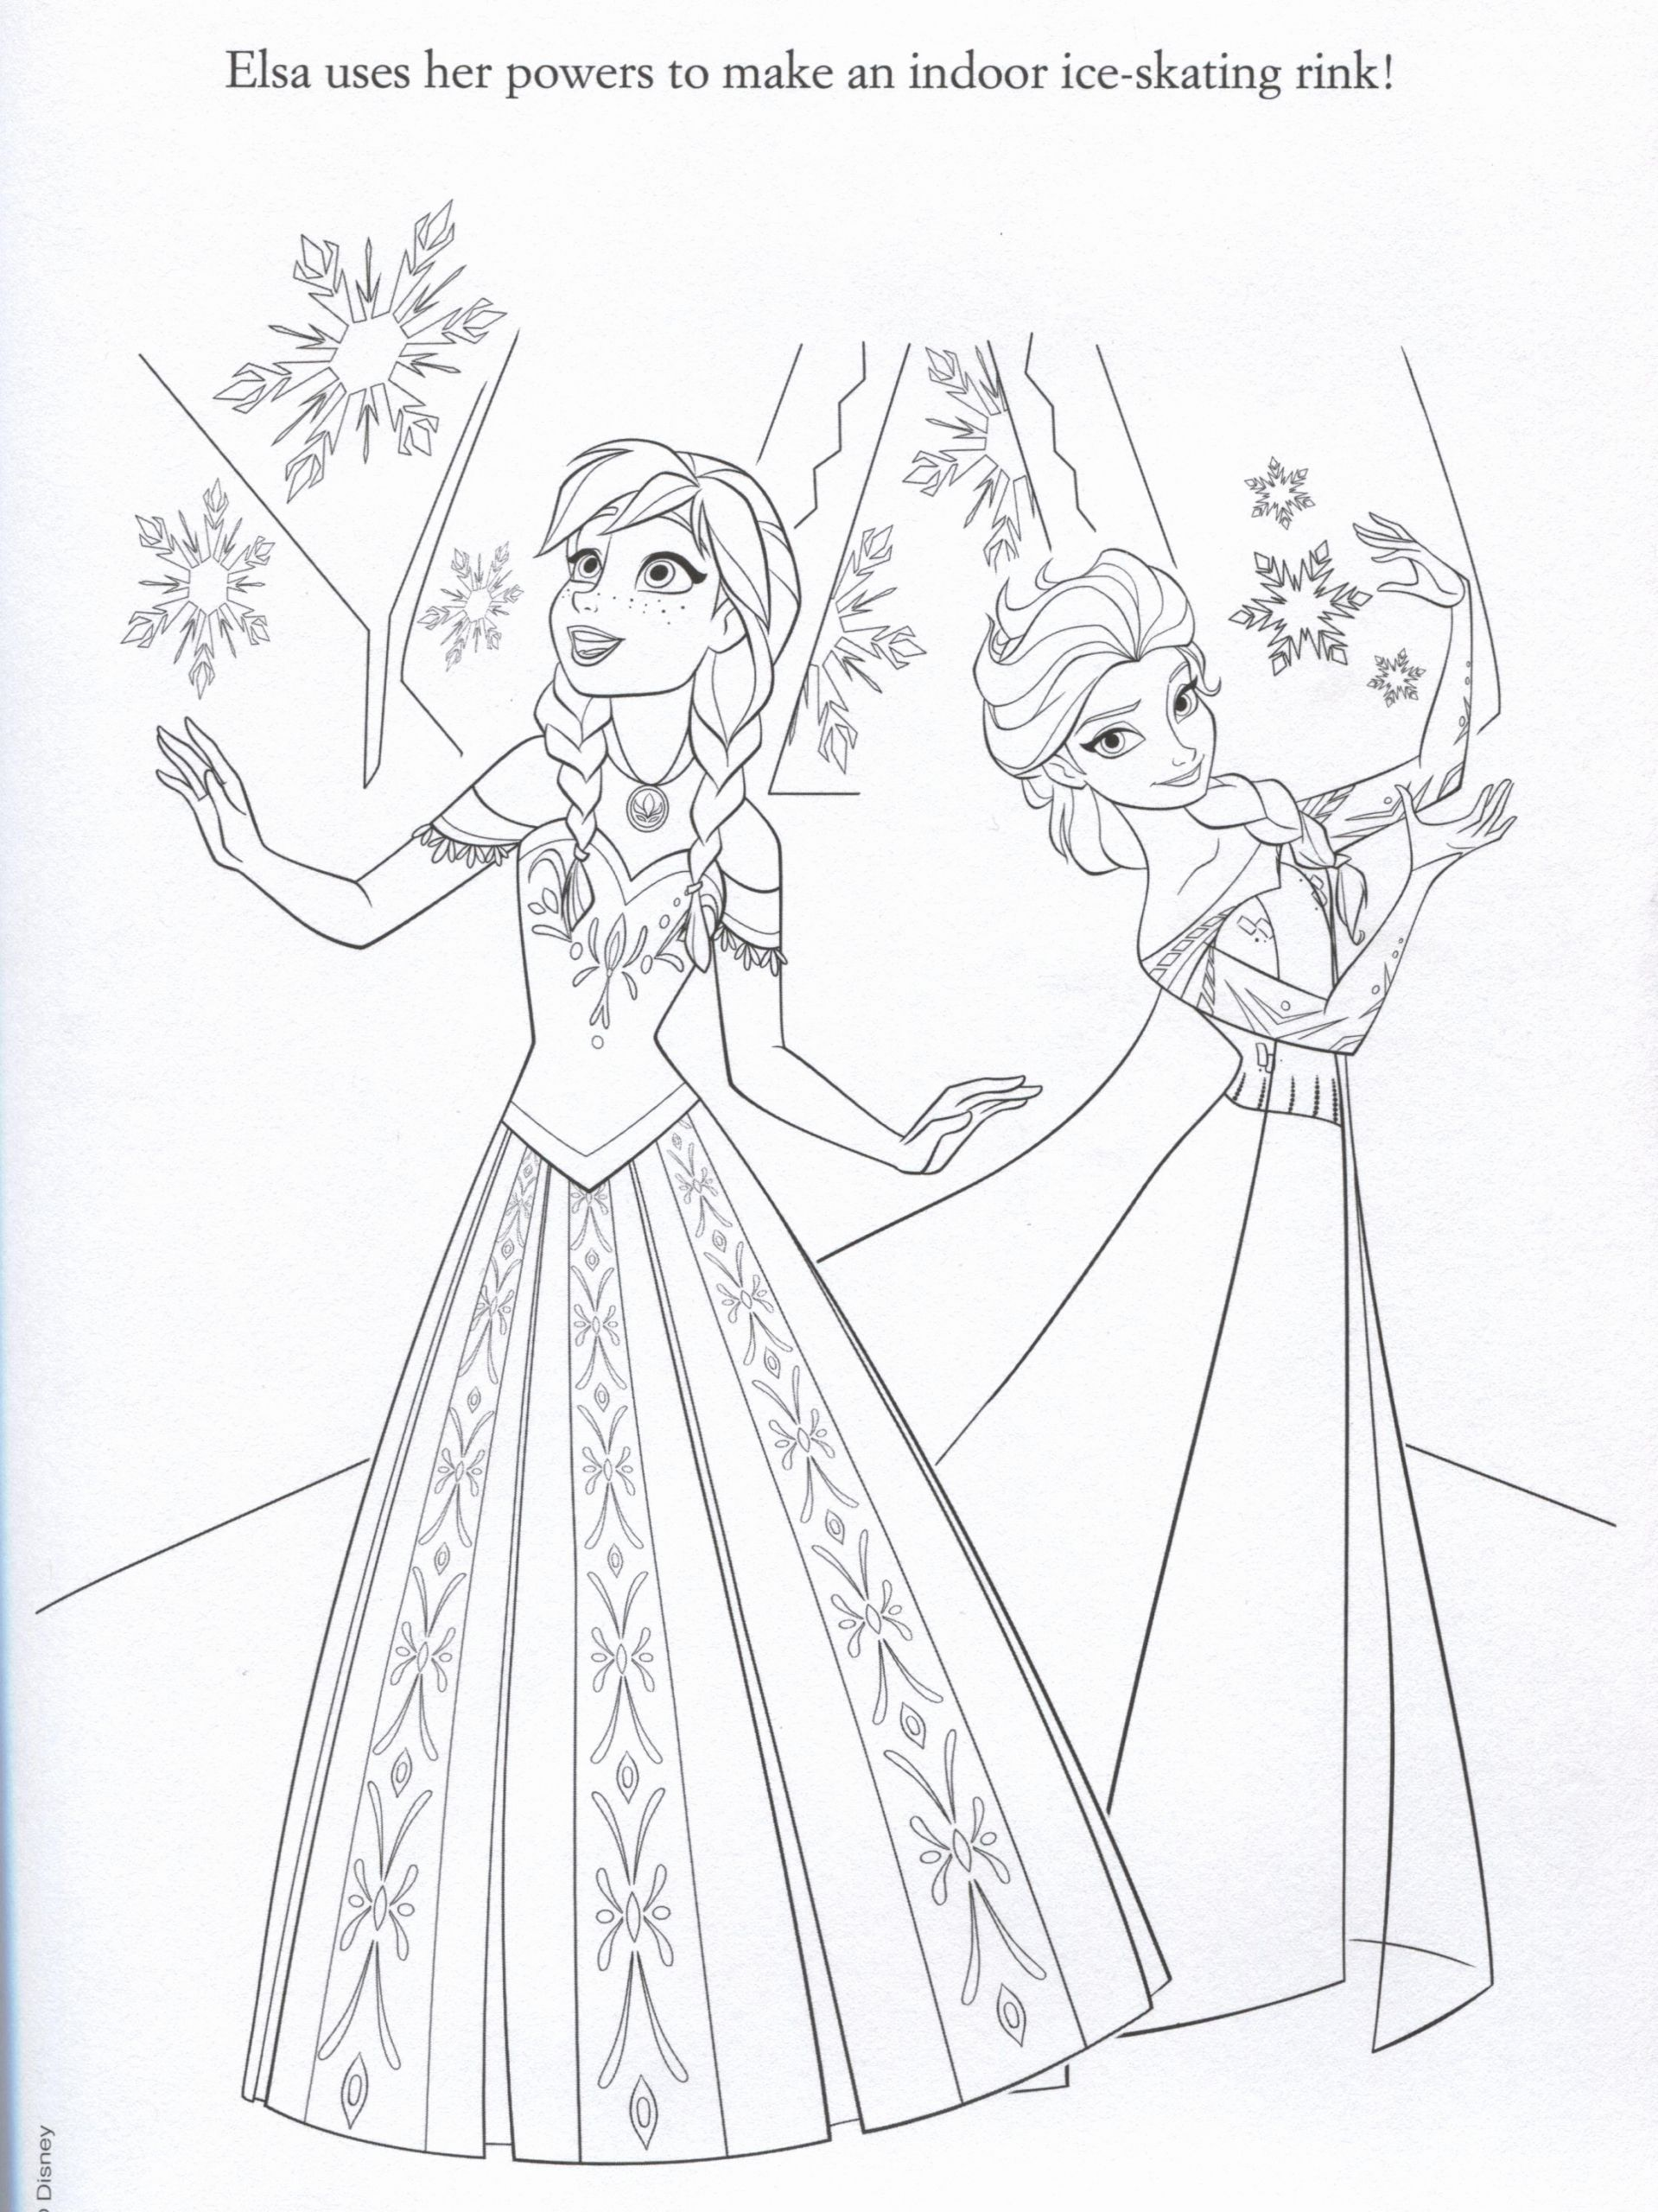 Anna Elsa Coloring Page Beautiful Disney Frozen Coloring Pages Lovebugs And Postcards Frozen Coloring Elsa Coloring Pages Frozen Coloring Pages